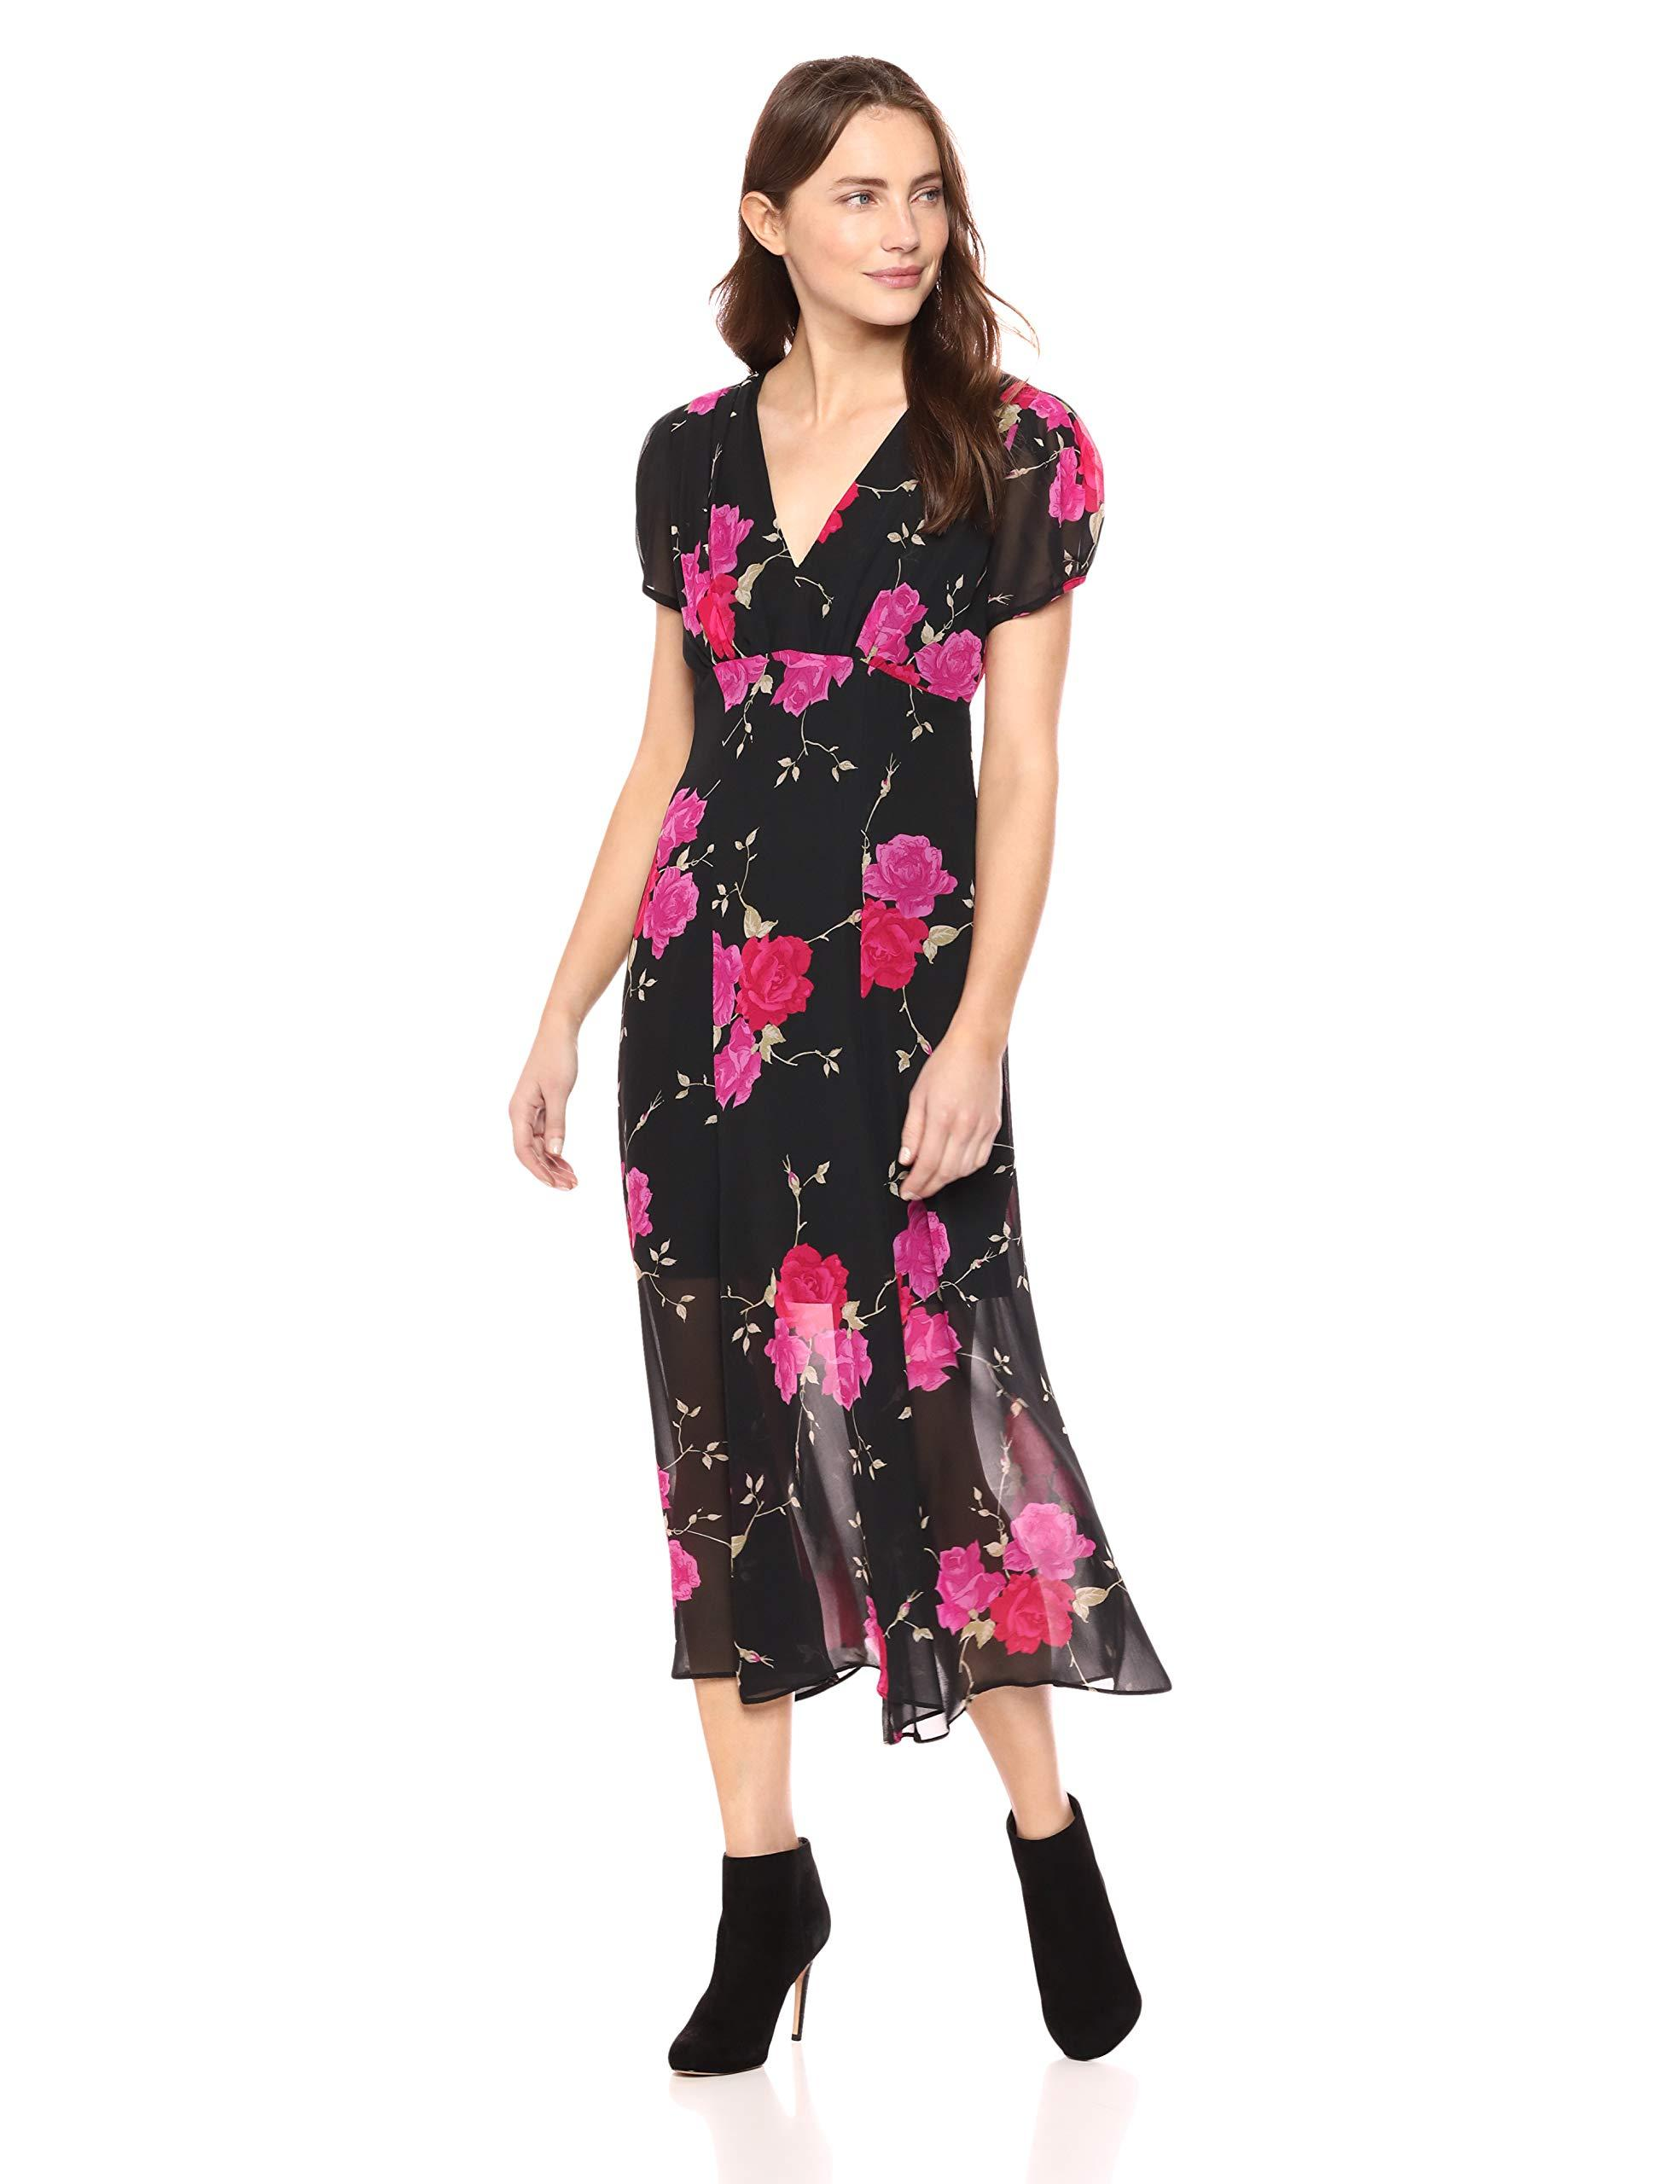 Betsey Johnson Womens Floral Print Pleated Dress Black//Red//Yellow 4